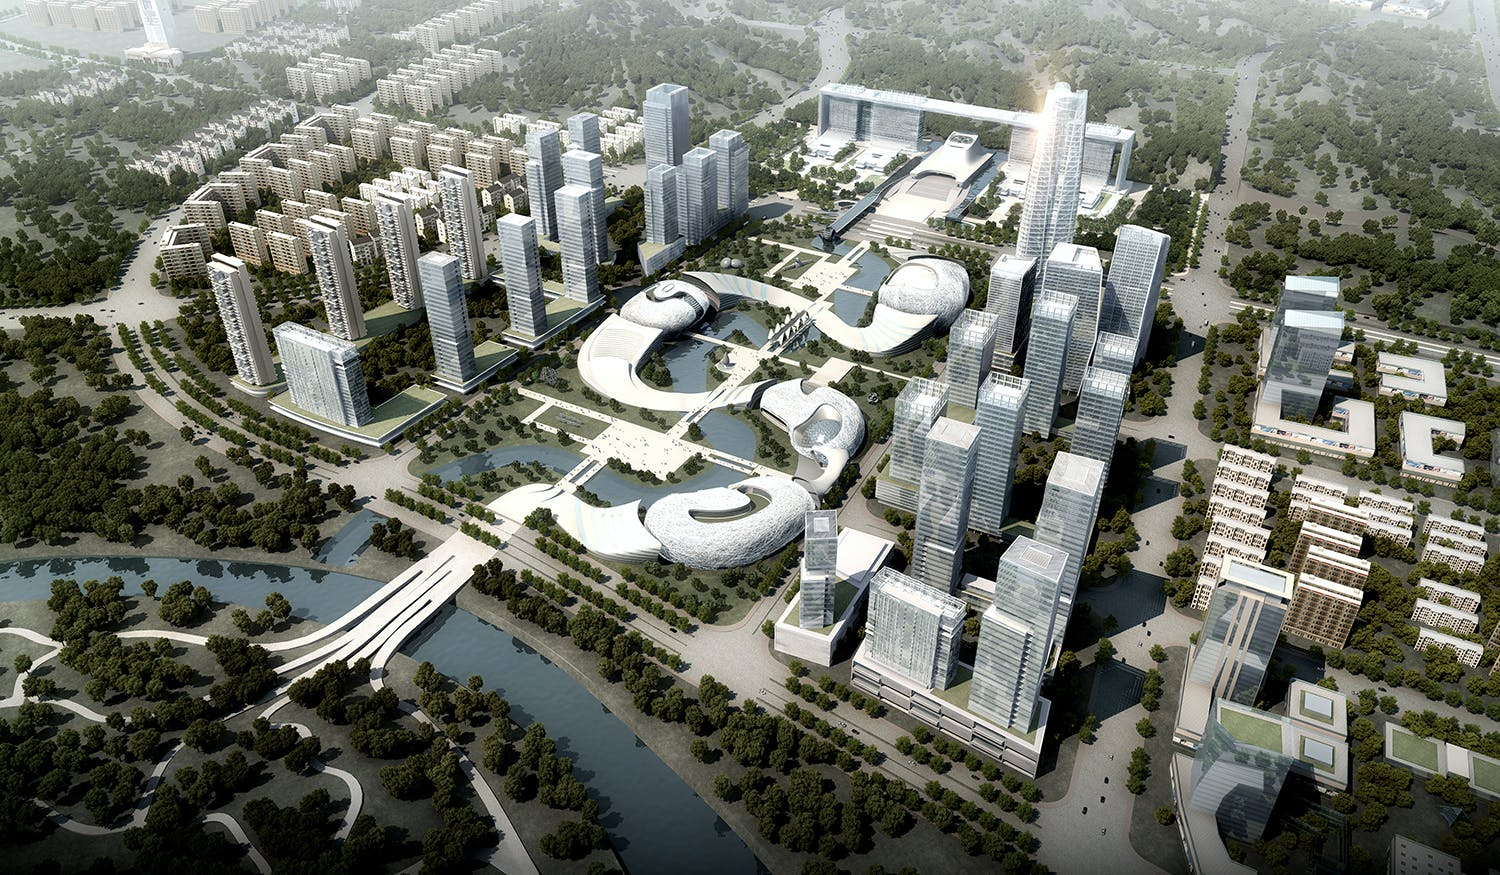 Yichang New District Master Plan And Public Service Center